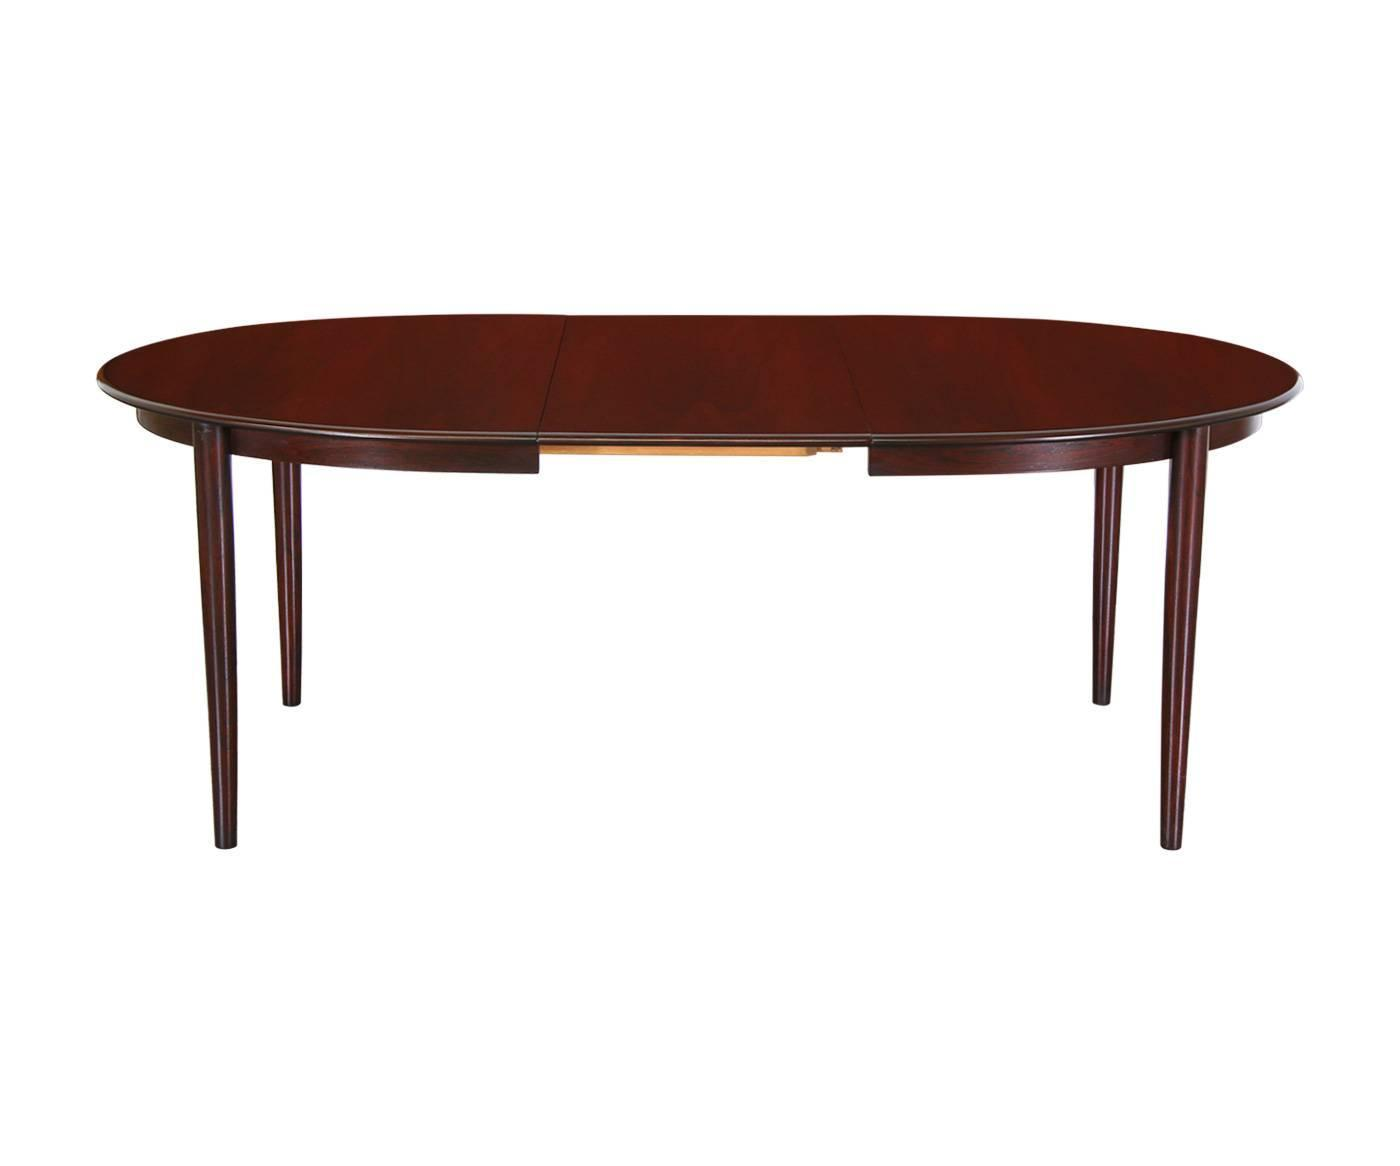 expanding dining table for sale 28 images arne vodder  : 1z from americanhomesforsale.us size 1400 x 1166 jpeg 26kB